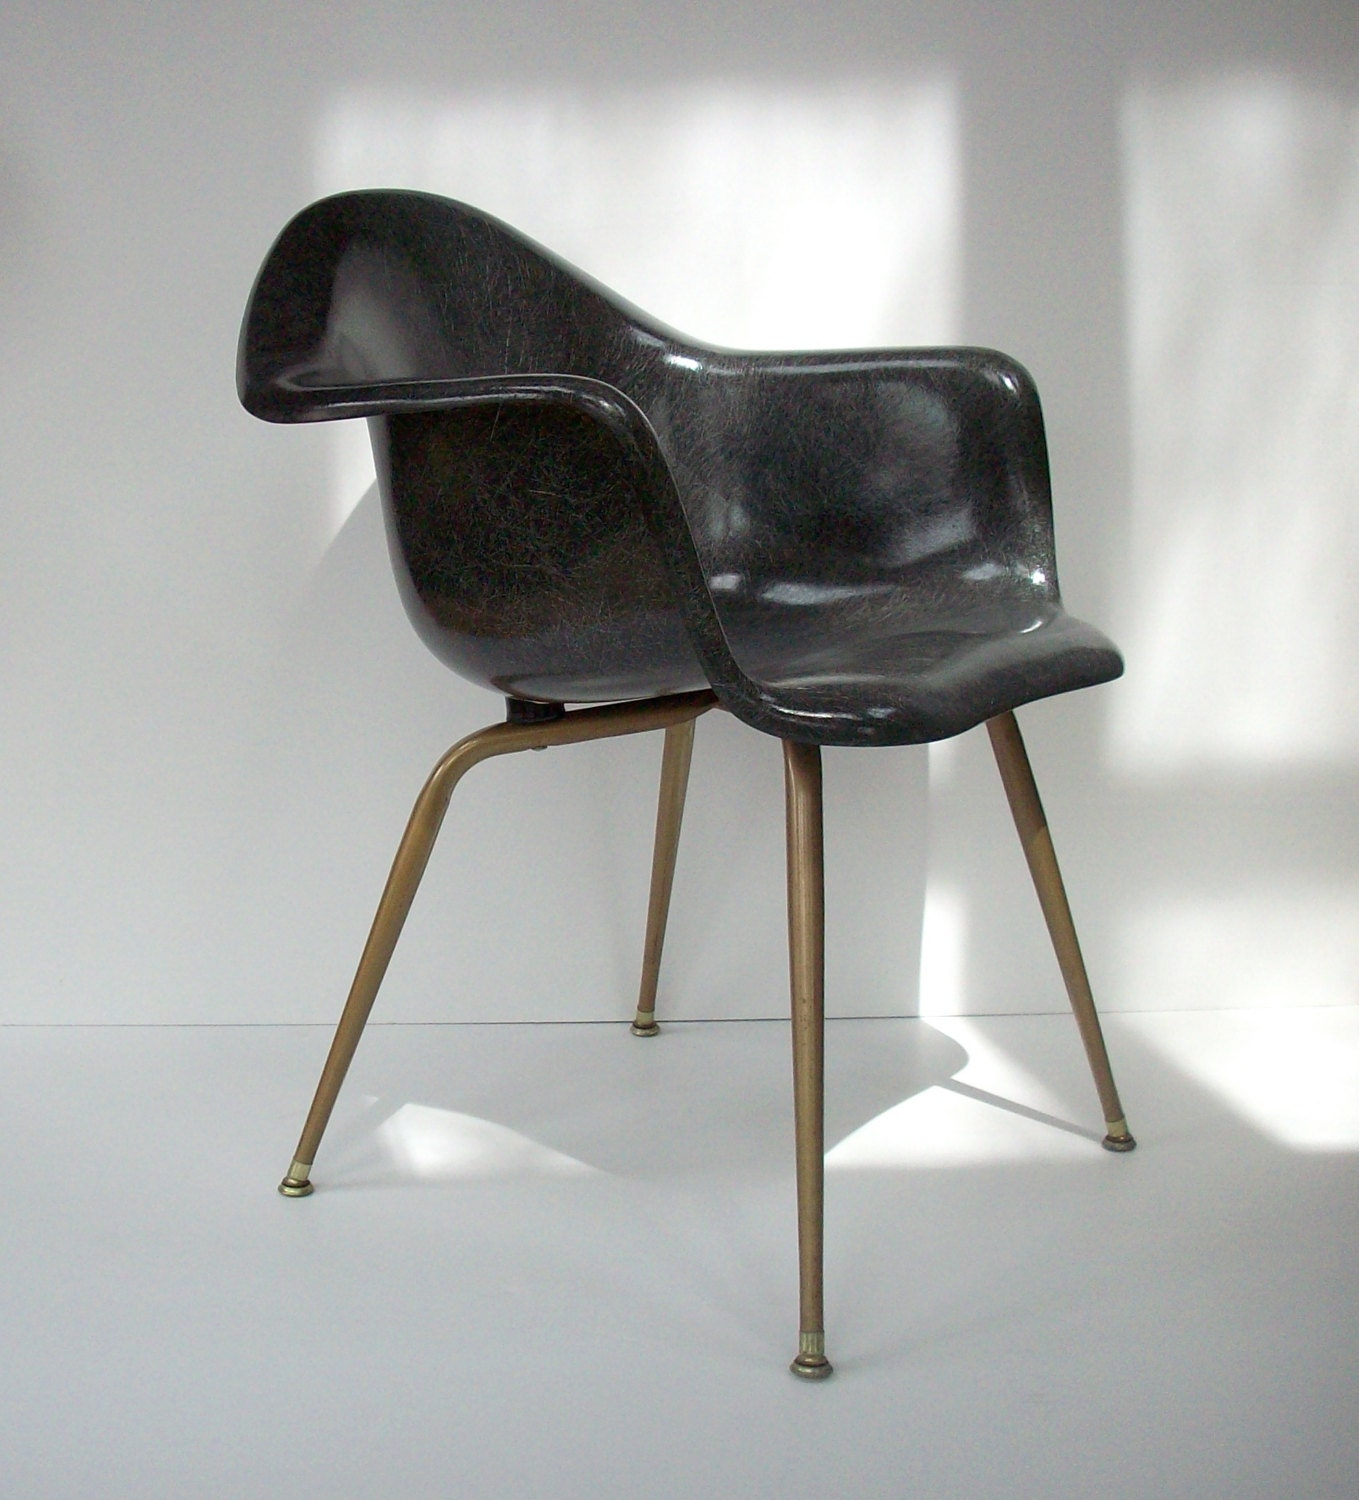 Vintage Chromcraft Fiberglass Shell Chair Mid by urgestudio : ilfullxfull757864965i3f3 from etsy.com size 1359 x 1500 jpeg 282kB